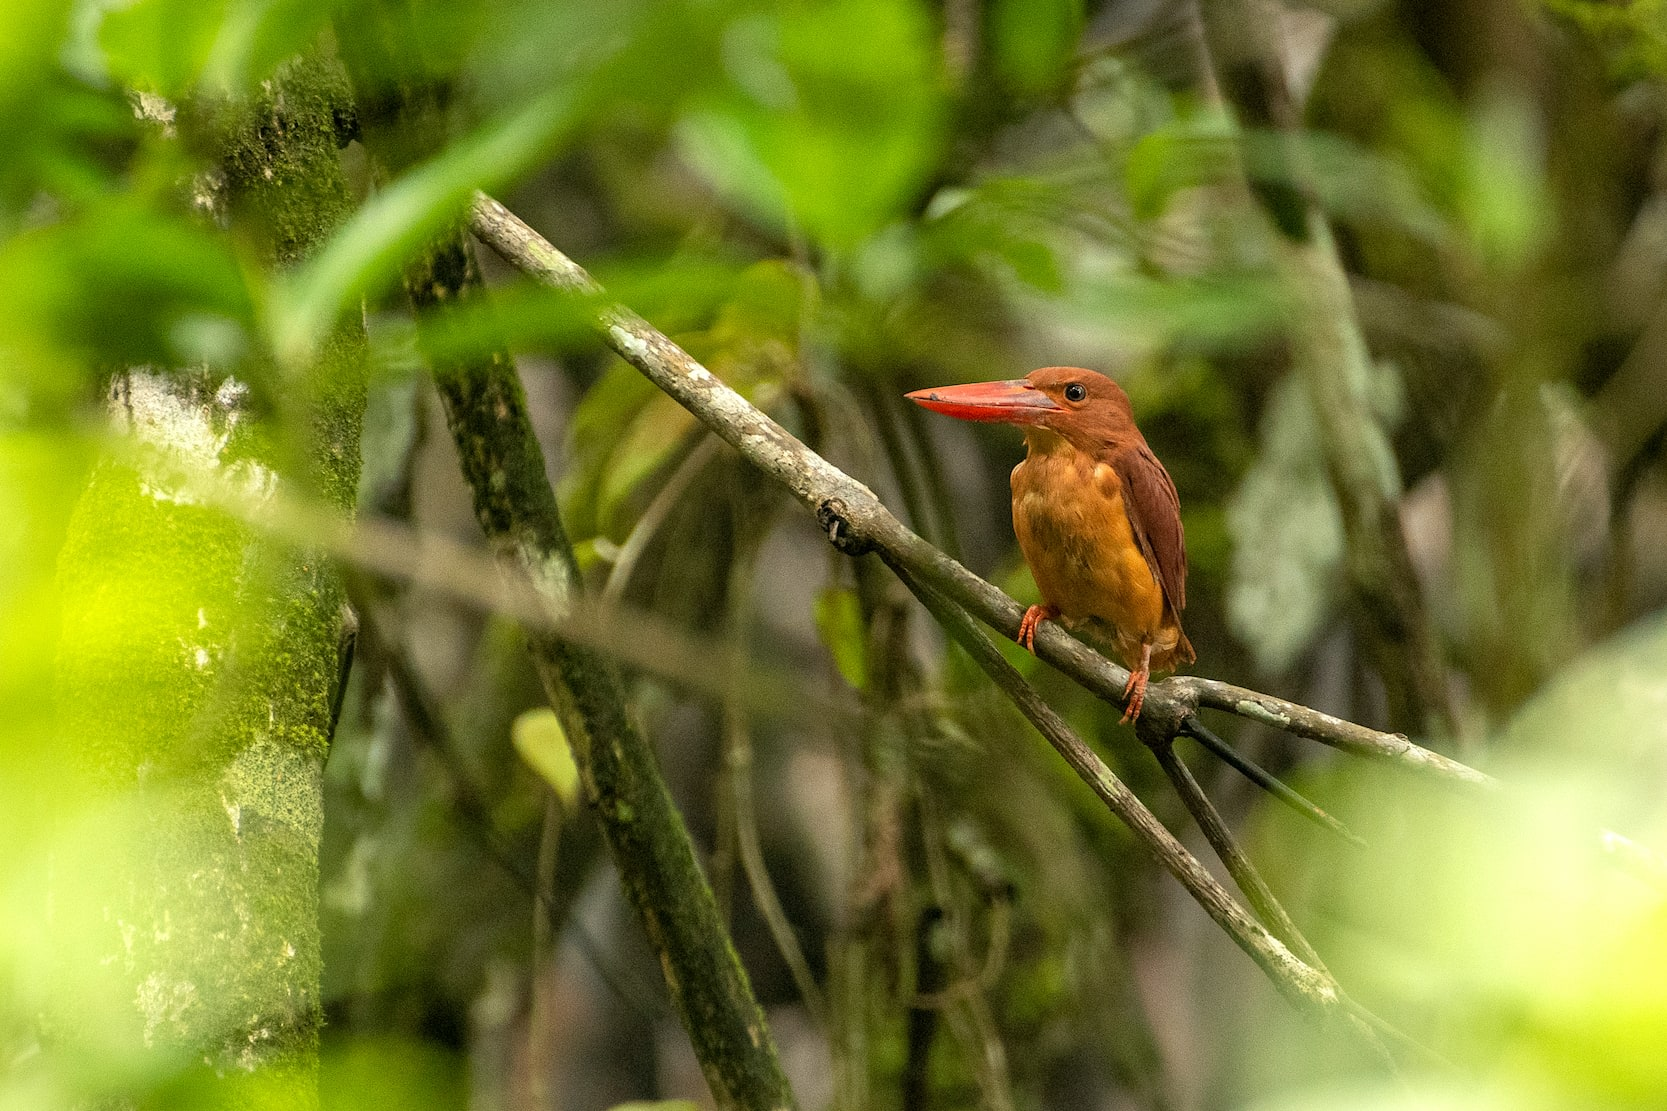 The ruddy kingfisher (Halcyon coromanda) is also a mangrove and forest-dwelling species found in Northeastern India and the Himalayas. Characterised by varying shades of brown and a typical red bill, these tree kingfishers supplement their diet of fish and crustaceans with frogs and insects. Photo: Saurabh Sawant